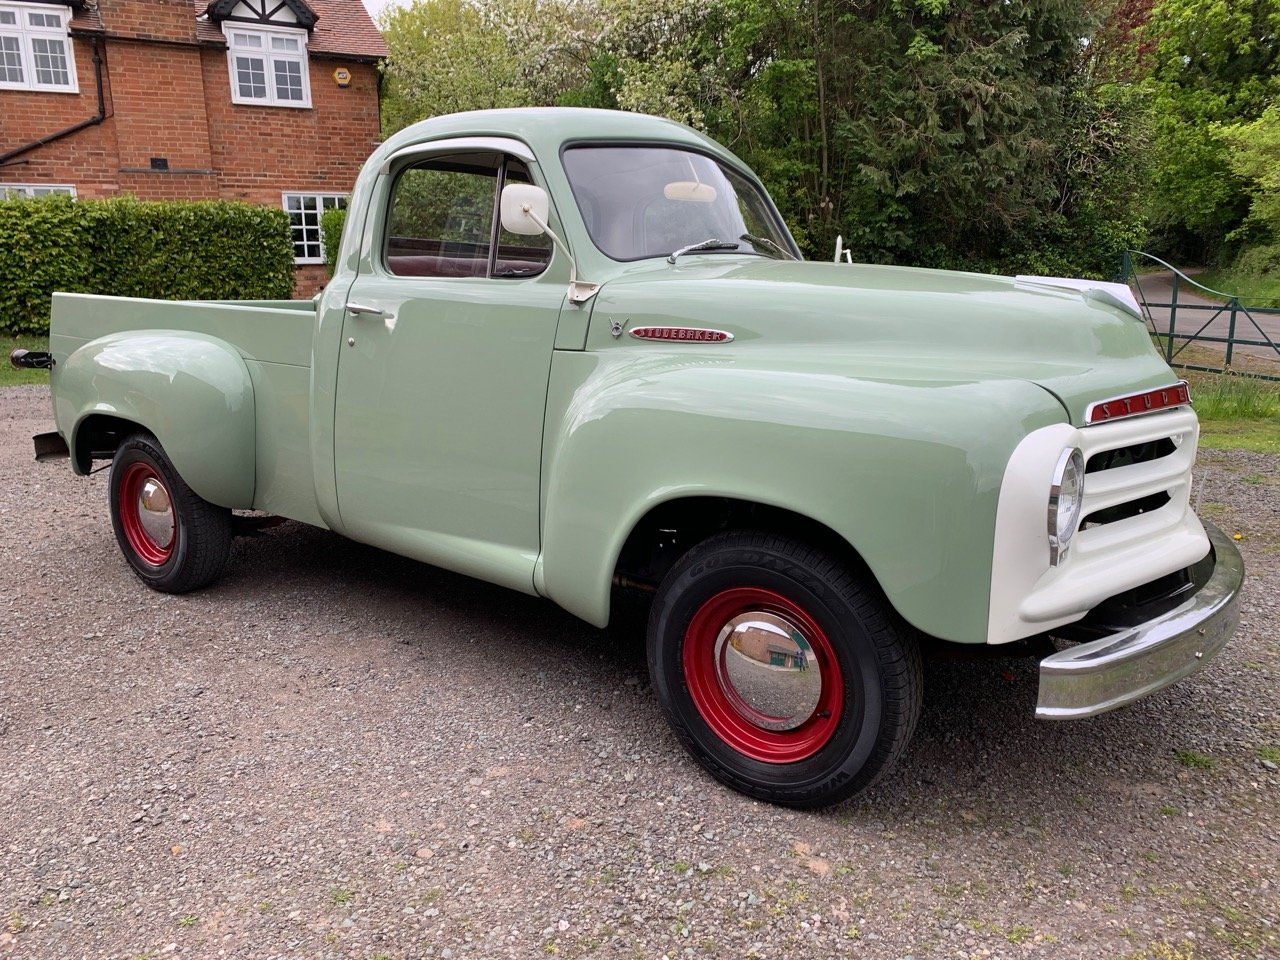 1955 STUDEBAKER E 7 HALF TON 289 V 8 PICK UP TRUCK For Sale (picture 1 of 6)